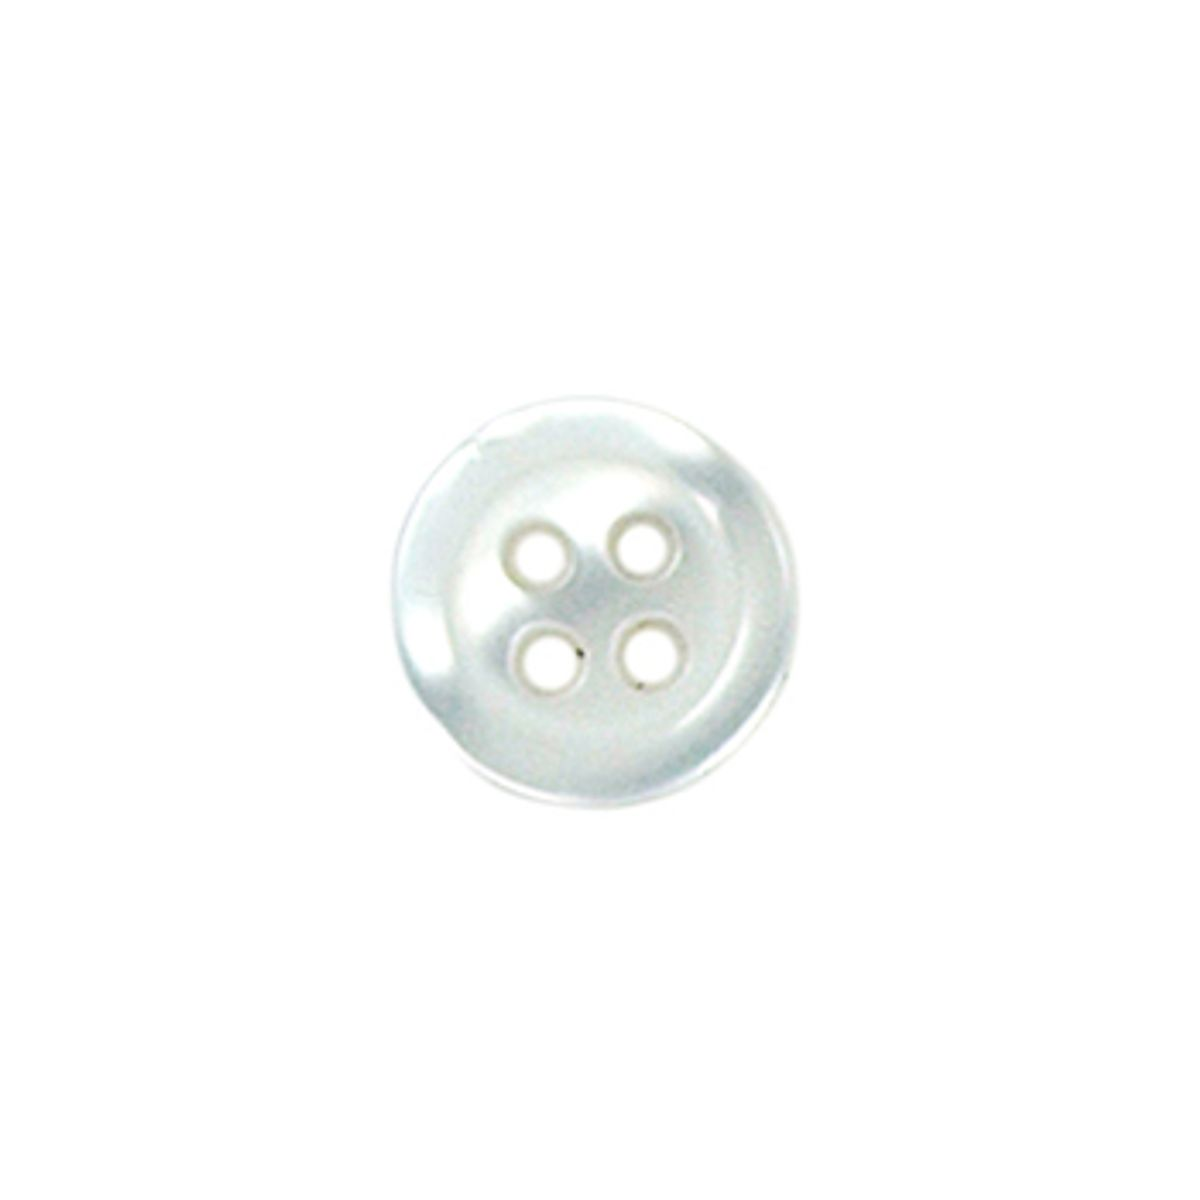 Tube de 6 boutons 4 trous - 10 mm